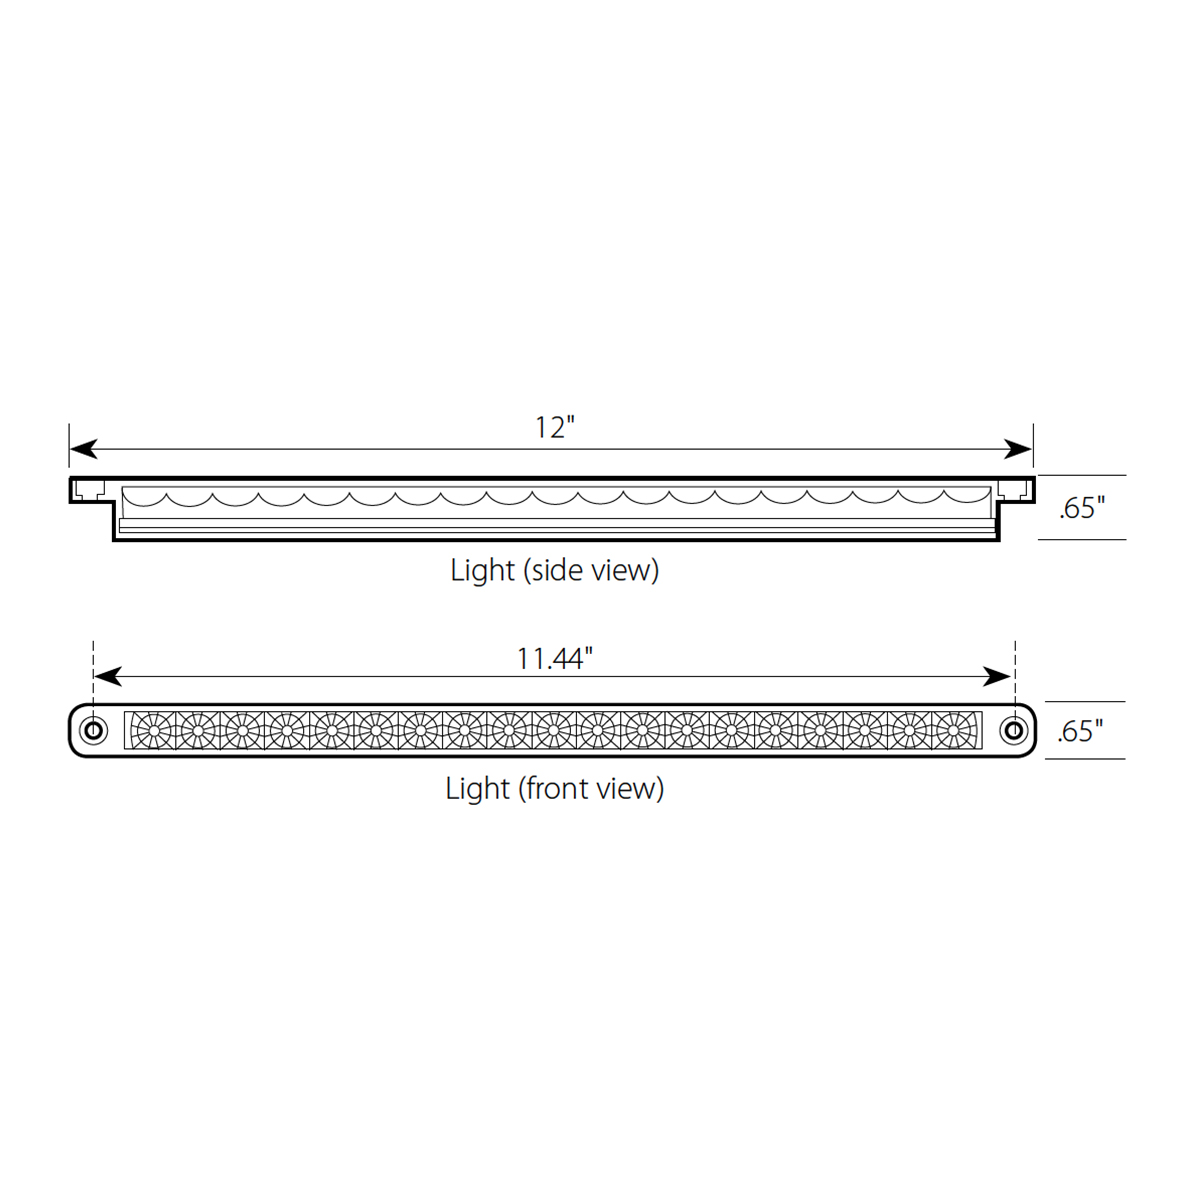 "12"" Dual Function LED Light Bar"